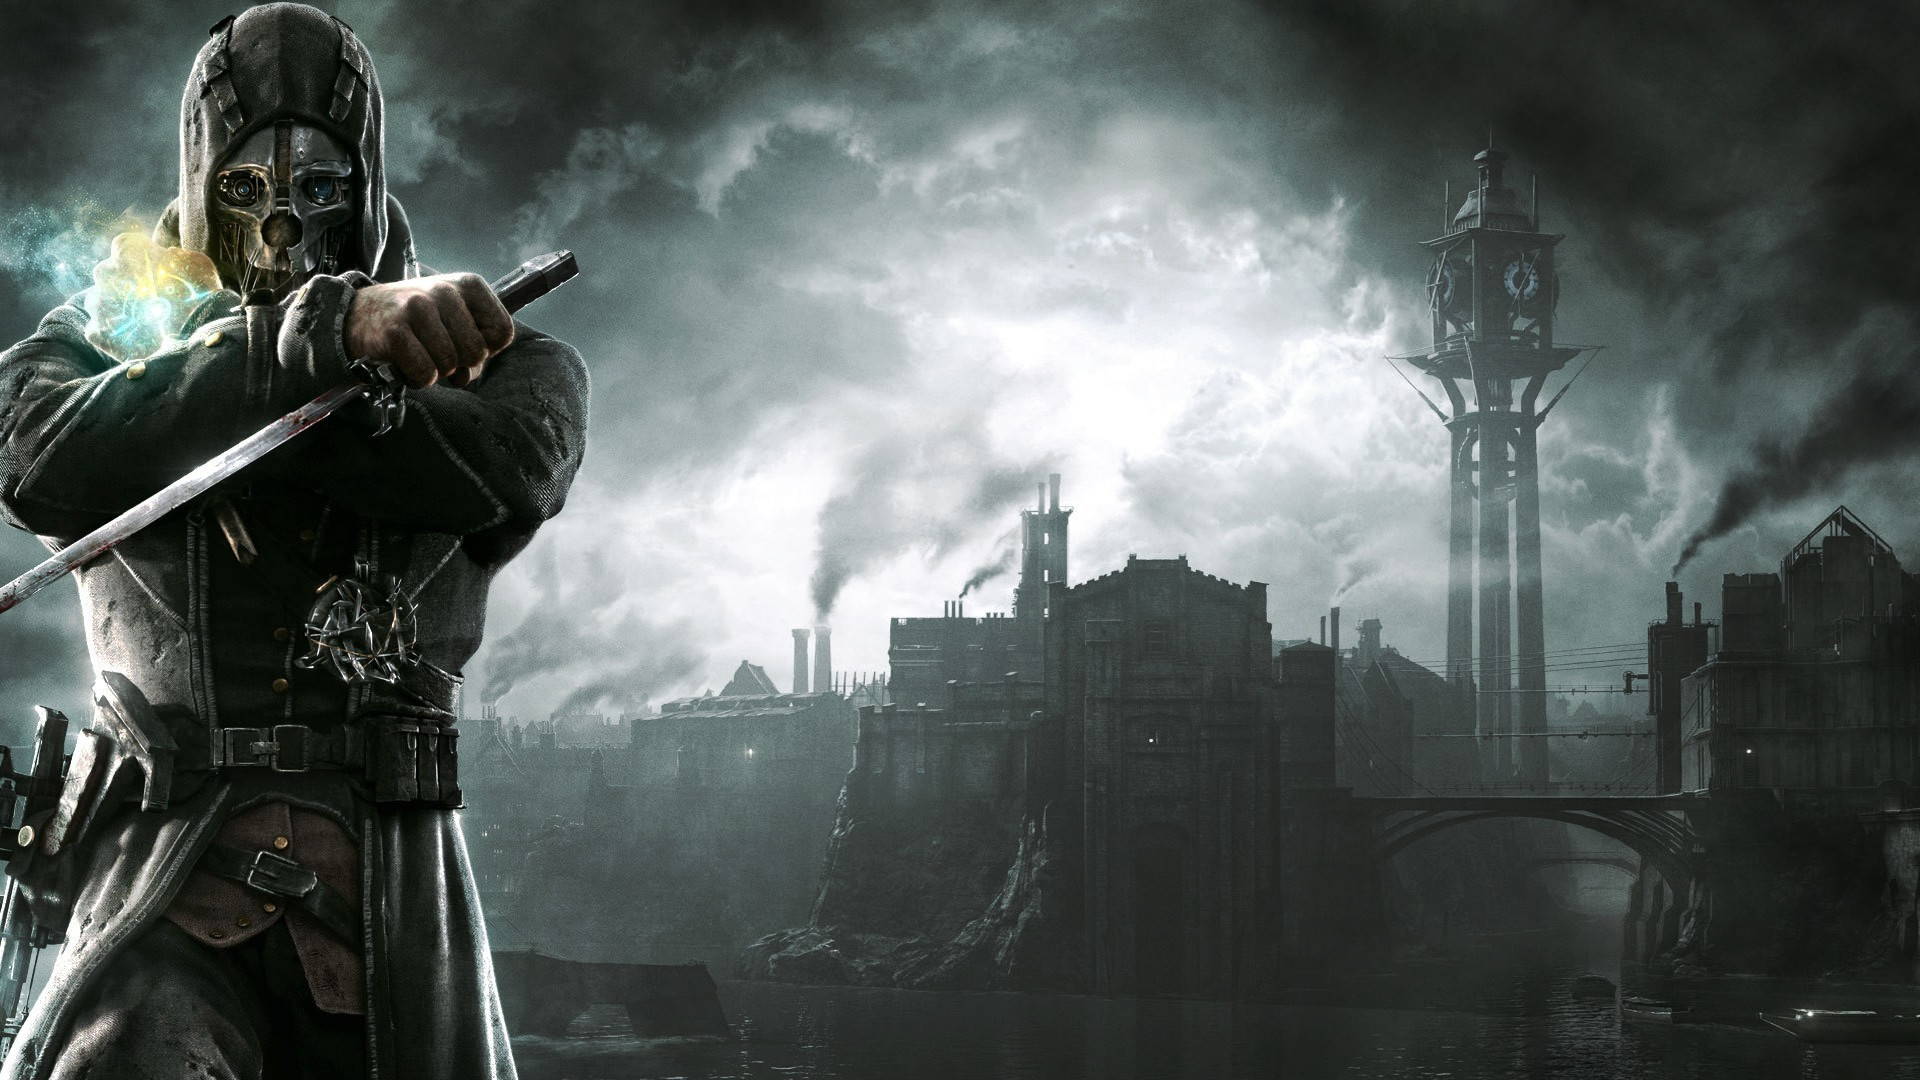 1920x1080 Dishonored-Game-HD-Wallpapers.jpg